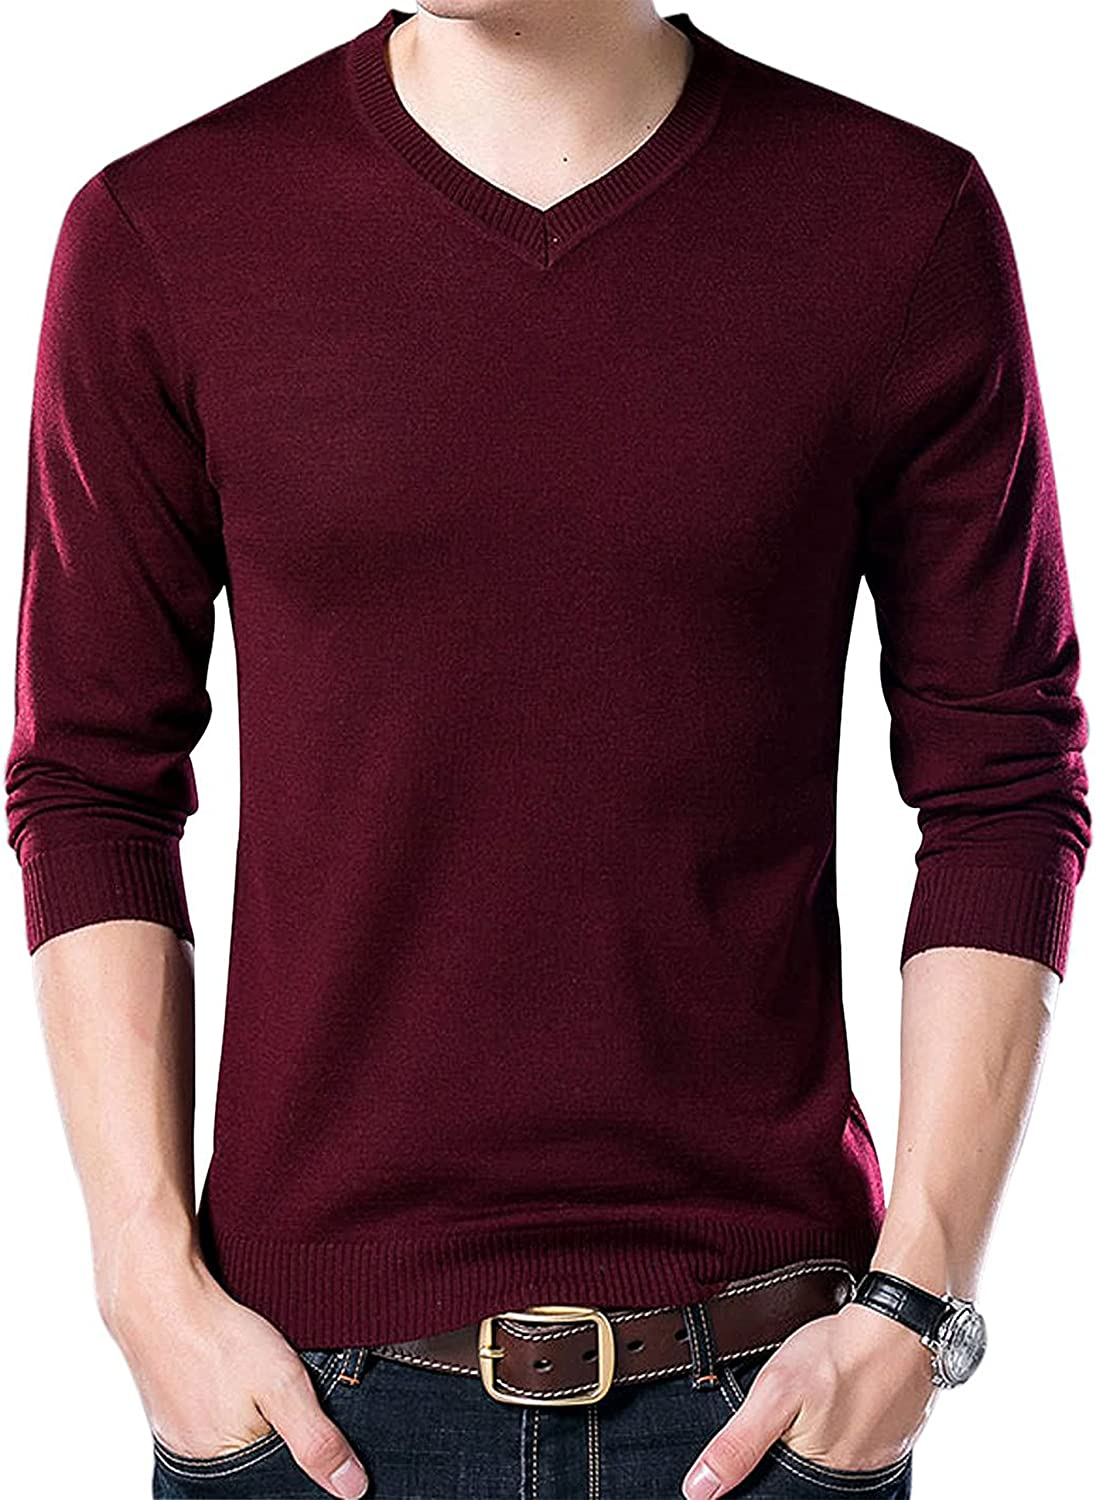 Yeokou Men's Casual Slim V Washington Mall Neck Cashmere Winter Wool Pullover Ju Limited price